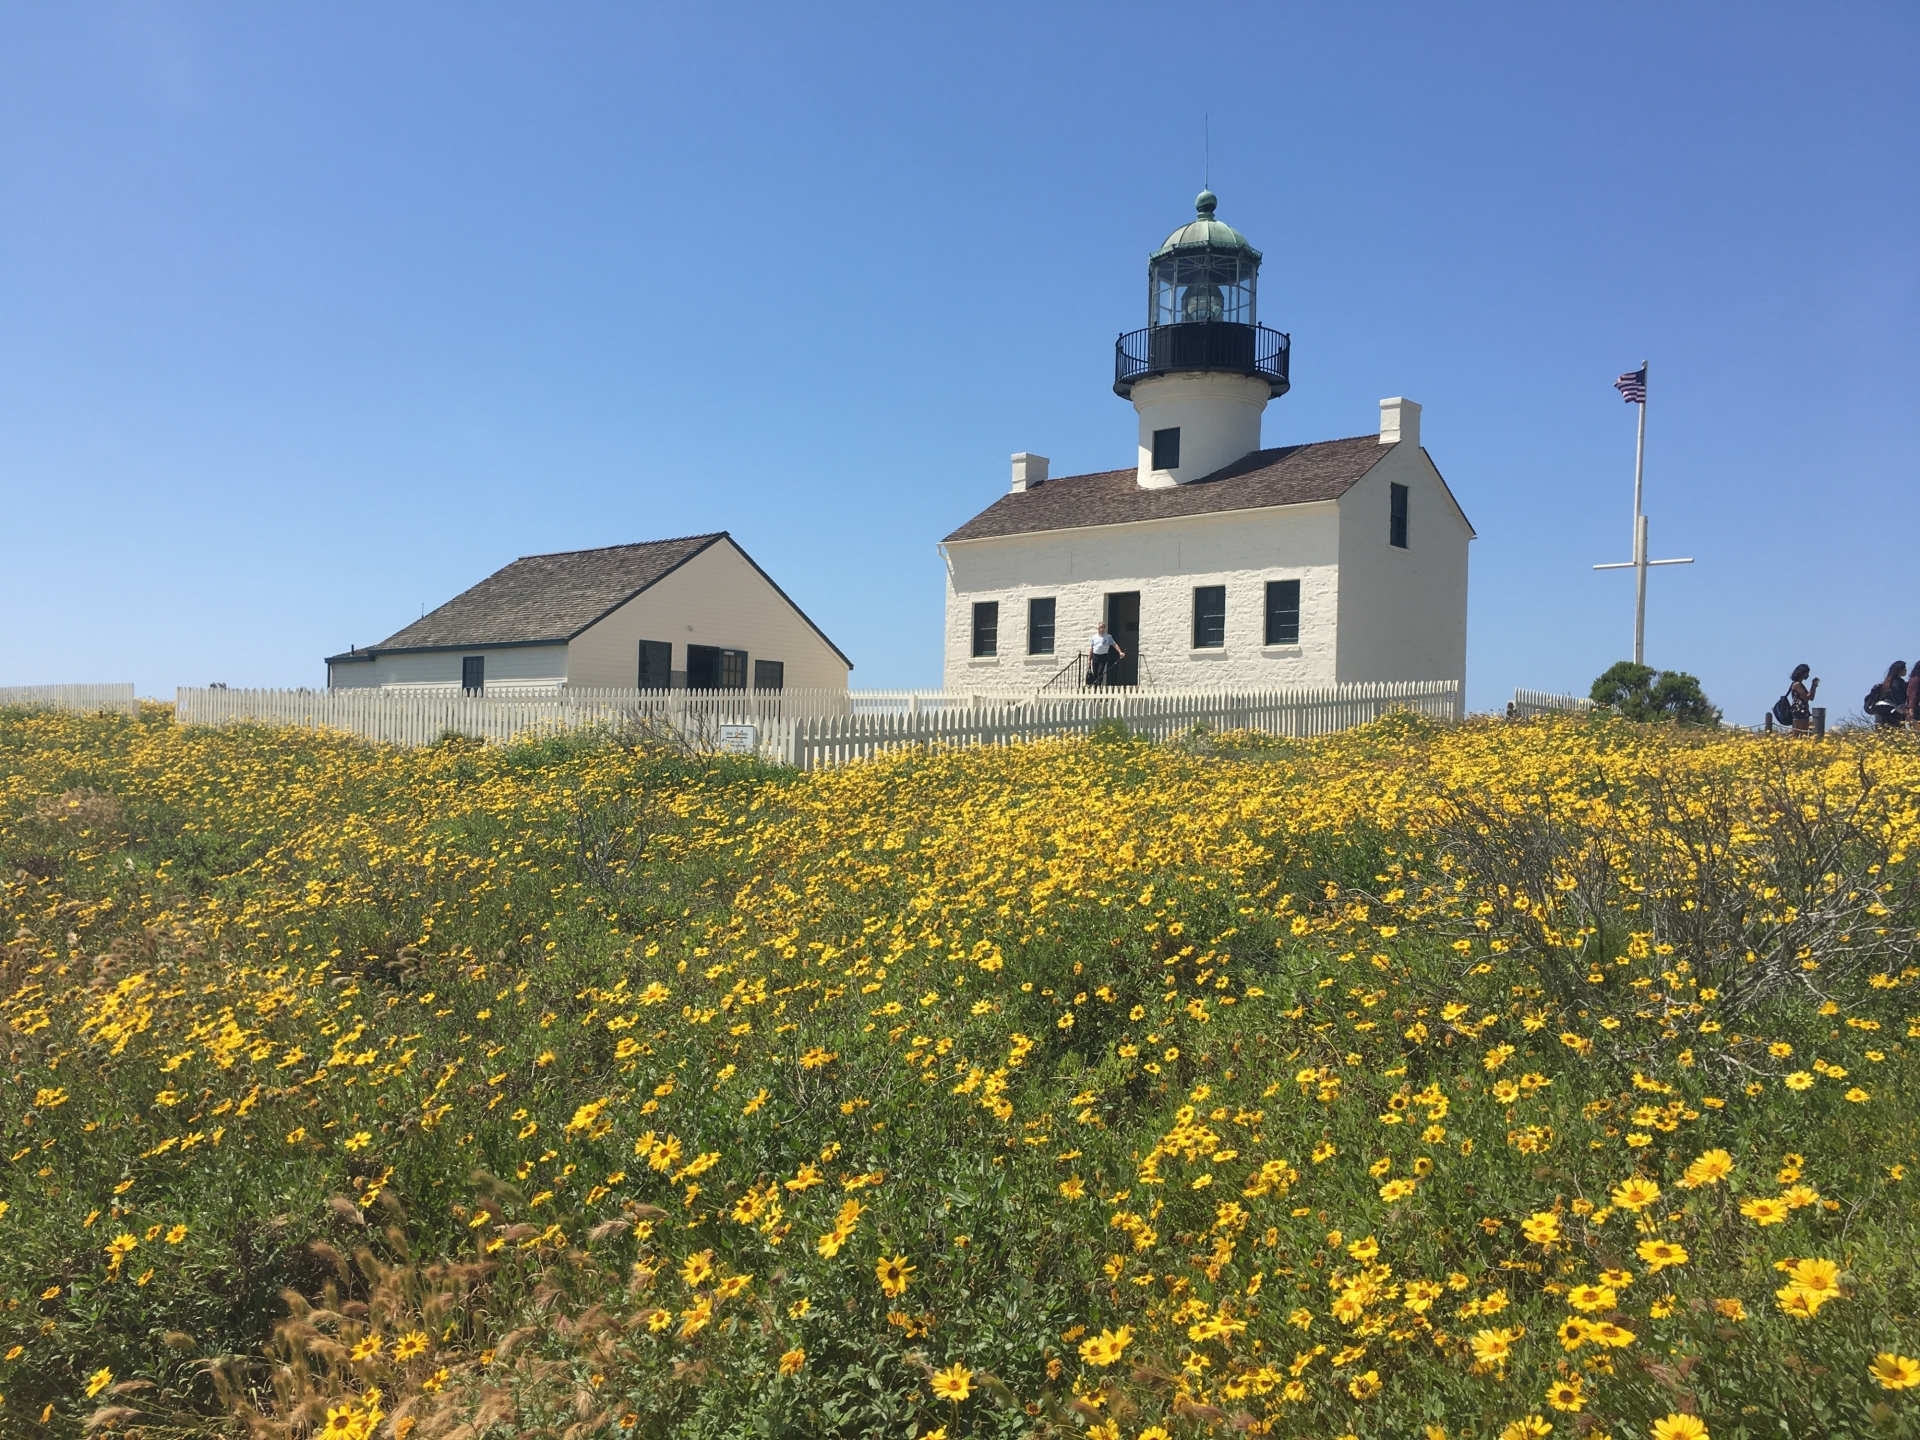 #PointLomaLighthouse,#RosiePhillips,#Cabrillo,#wildflowers